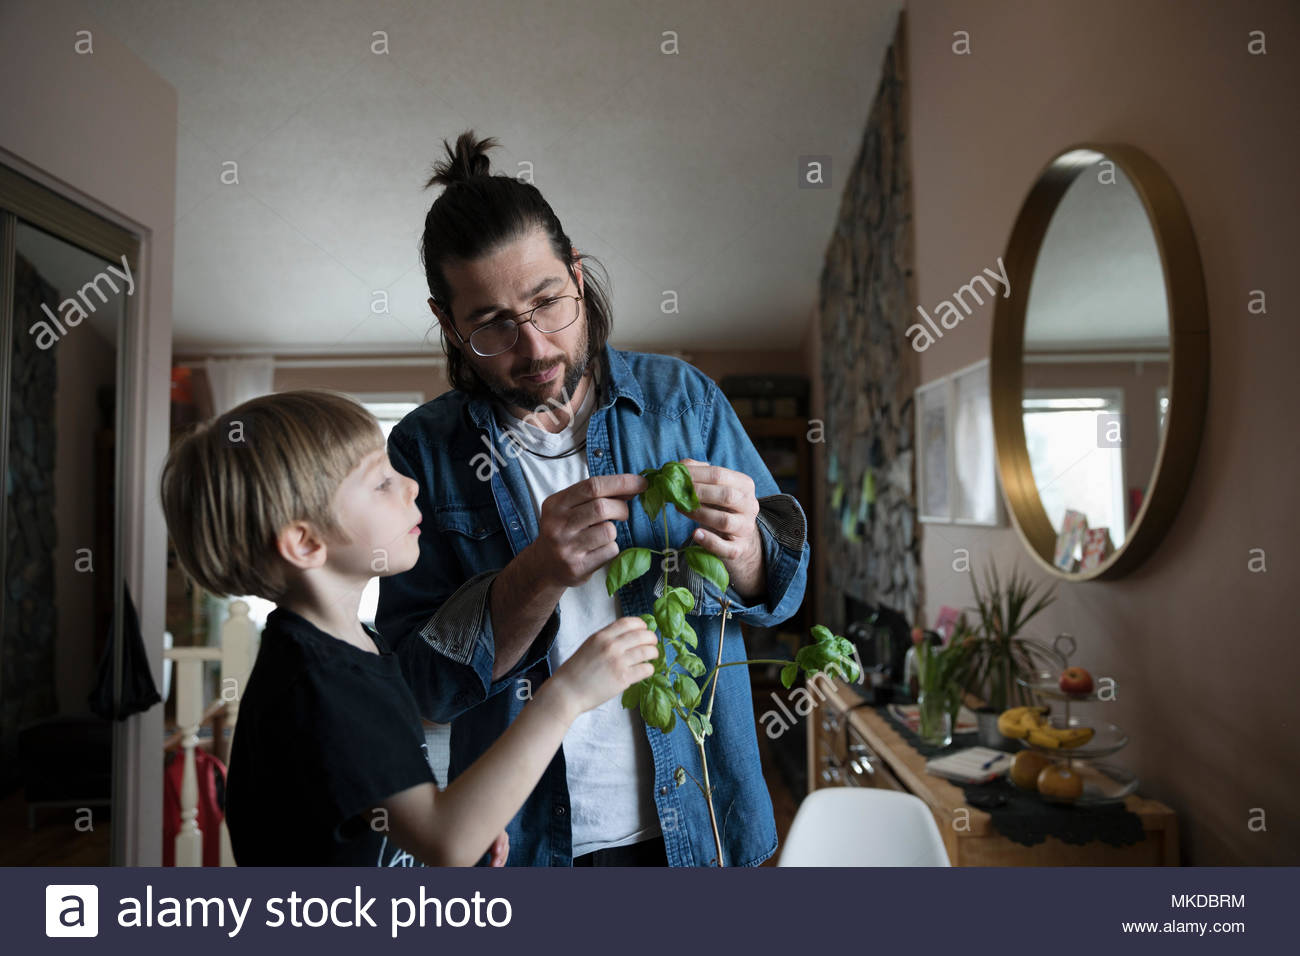 Father and son picking basil from plant - Stock Image